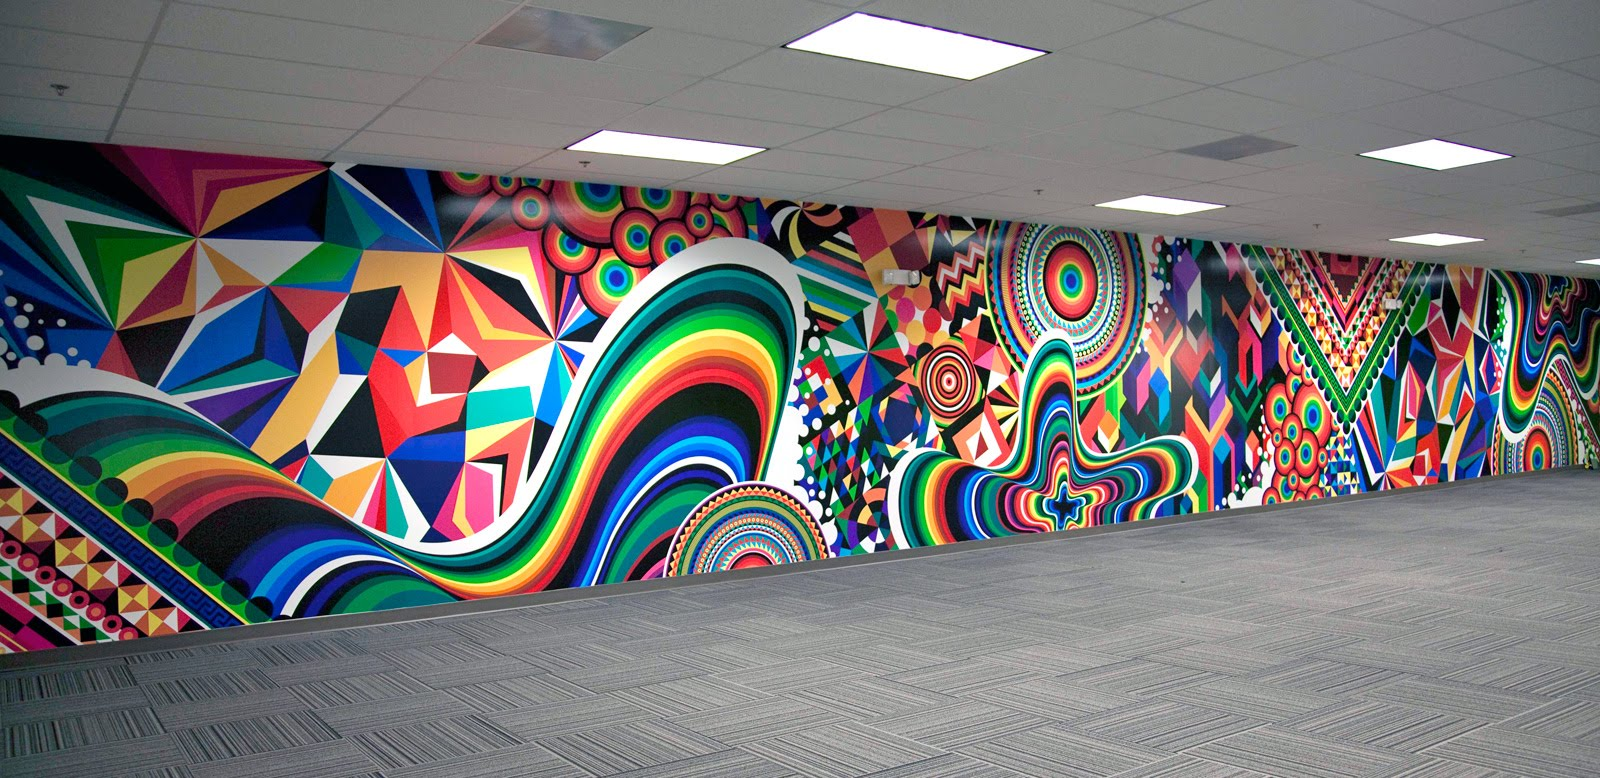 Mwm news blog super sized pop art op art for Mural art designs